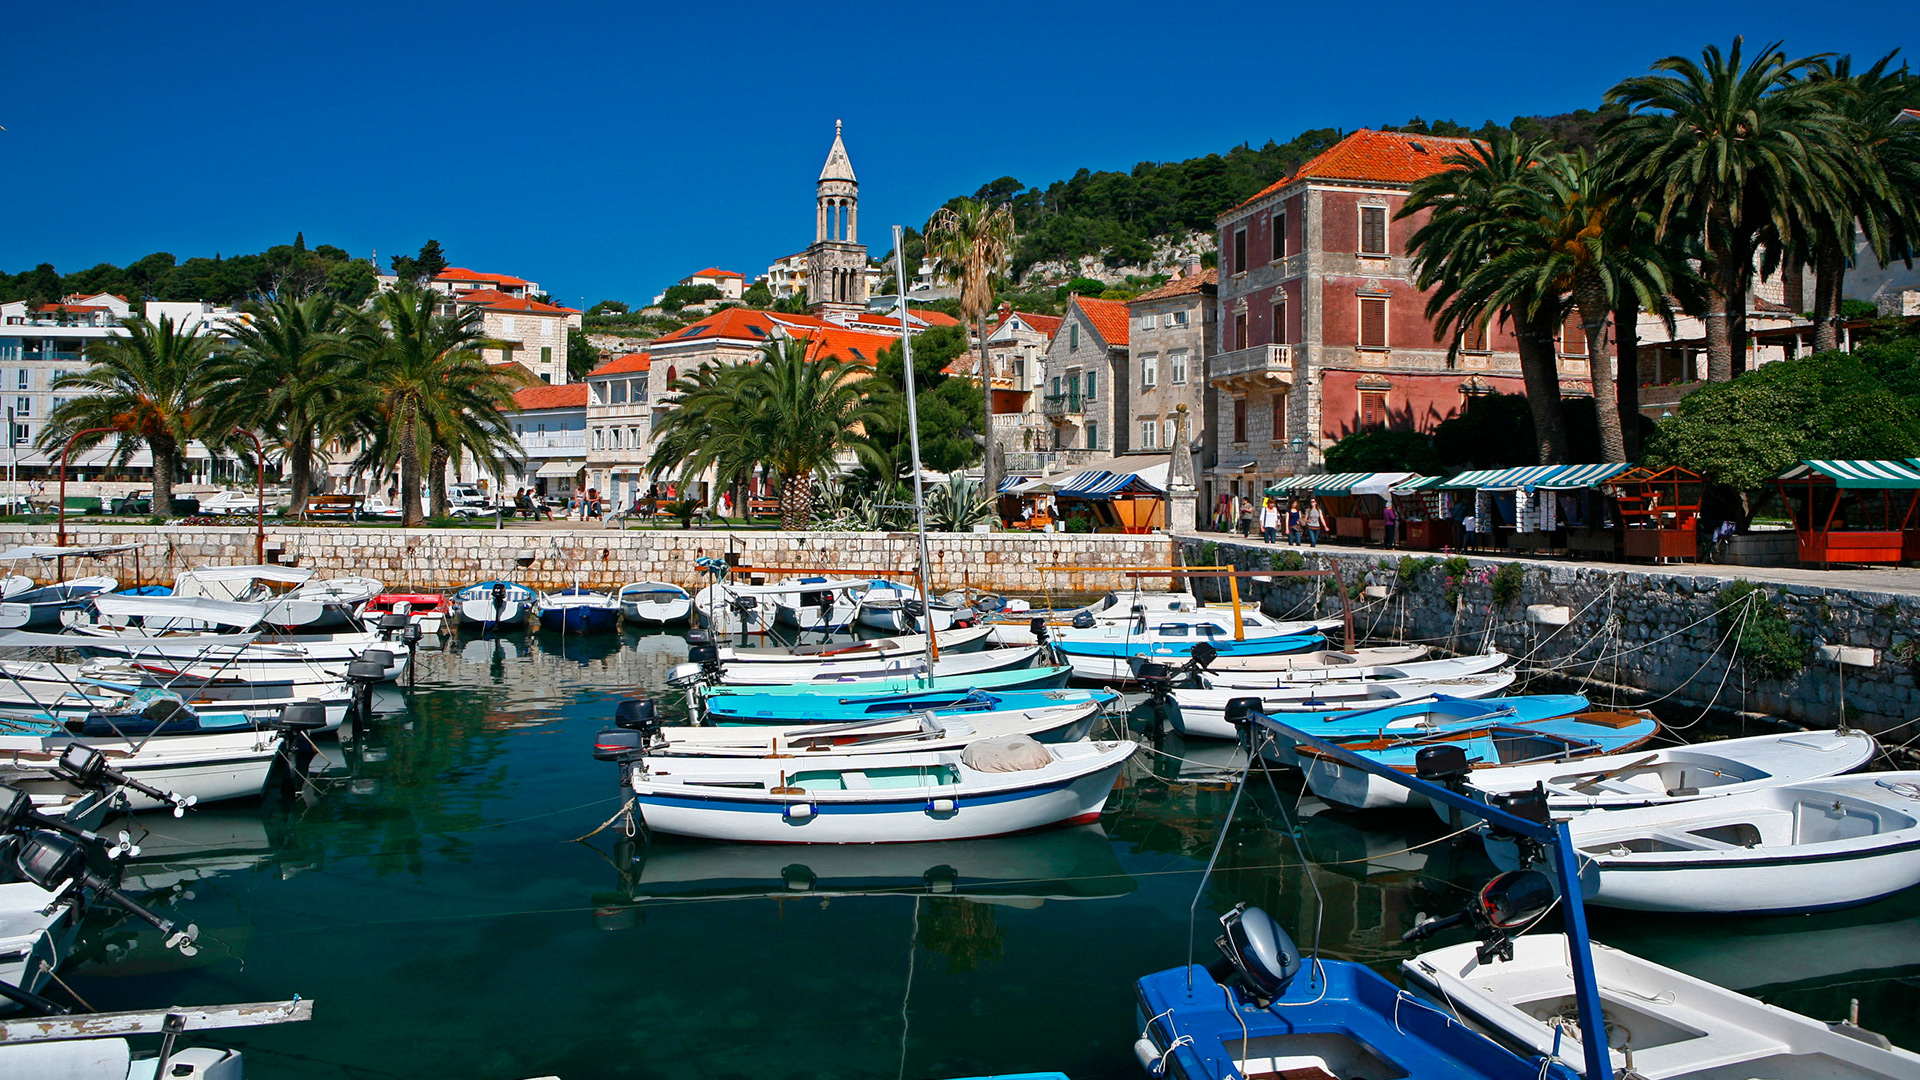 Boats at the waterfront of the Old town of Hvar, Hvar island, Croatia - SimpleSail sailing routes